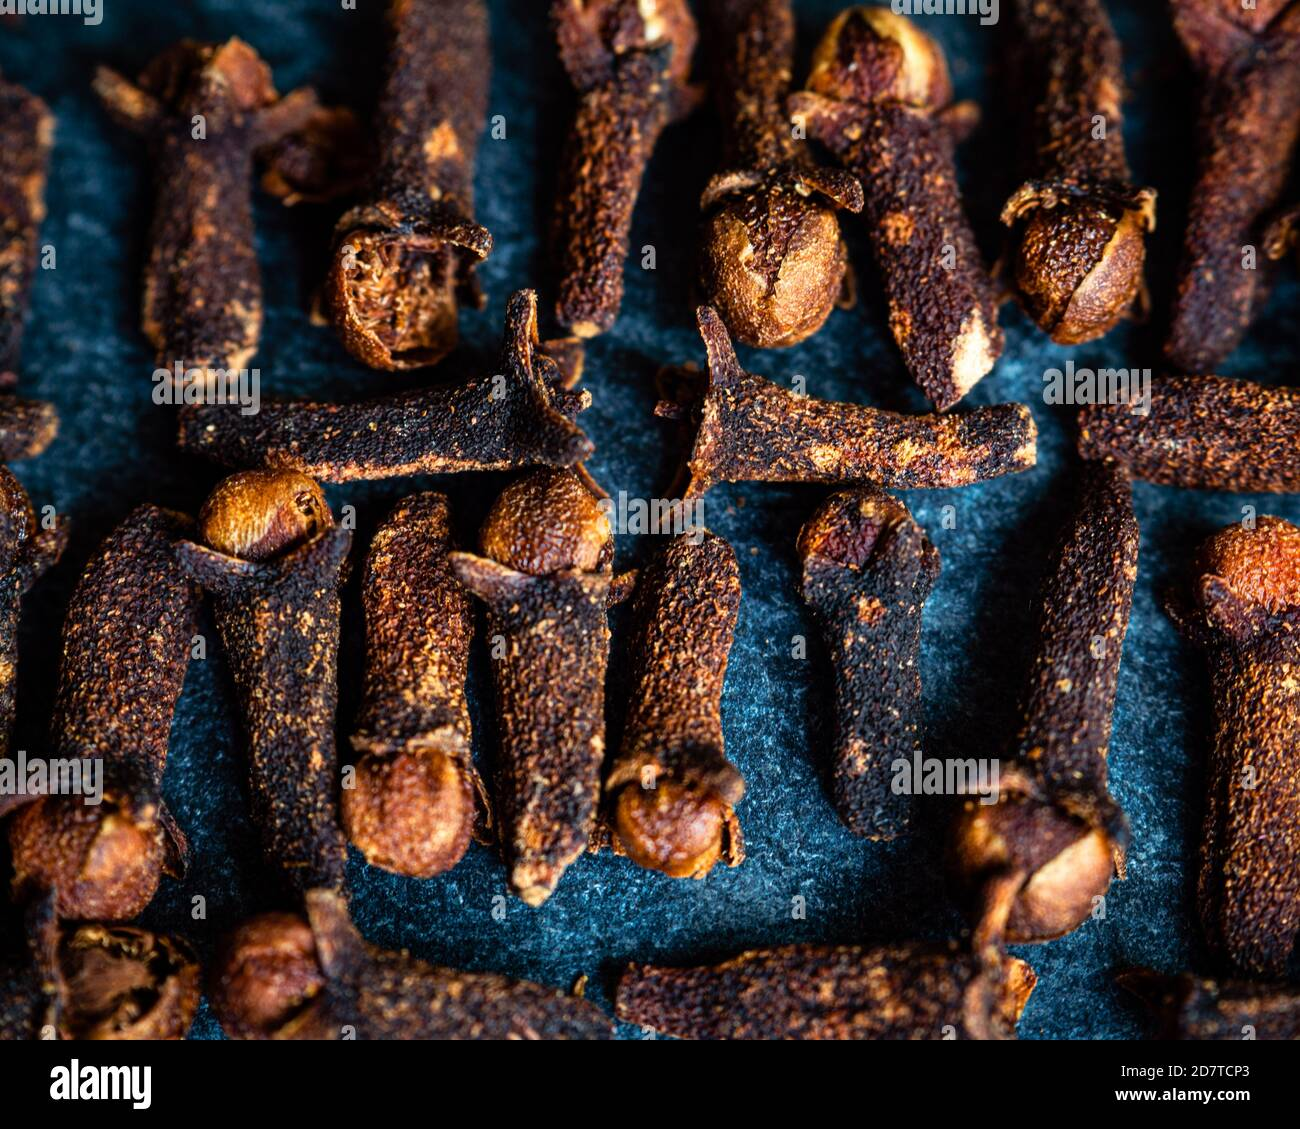 Close-up of cloves on a dark blue background shot overhead Stock Photo